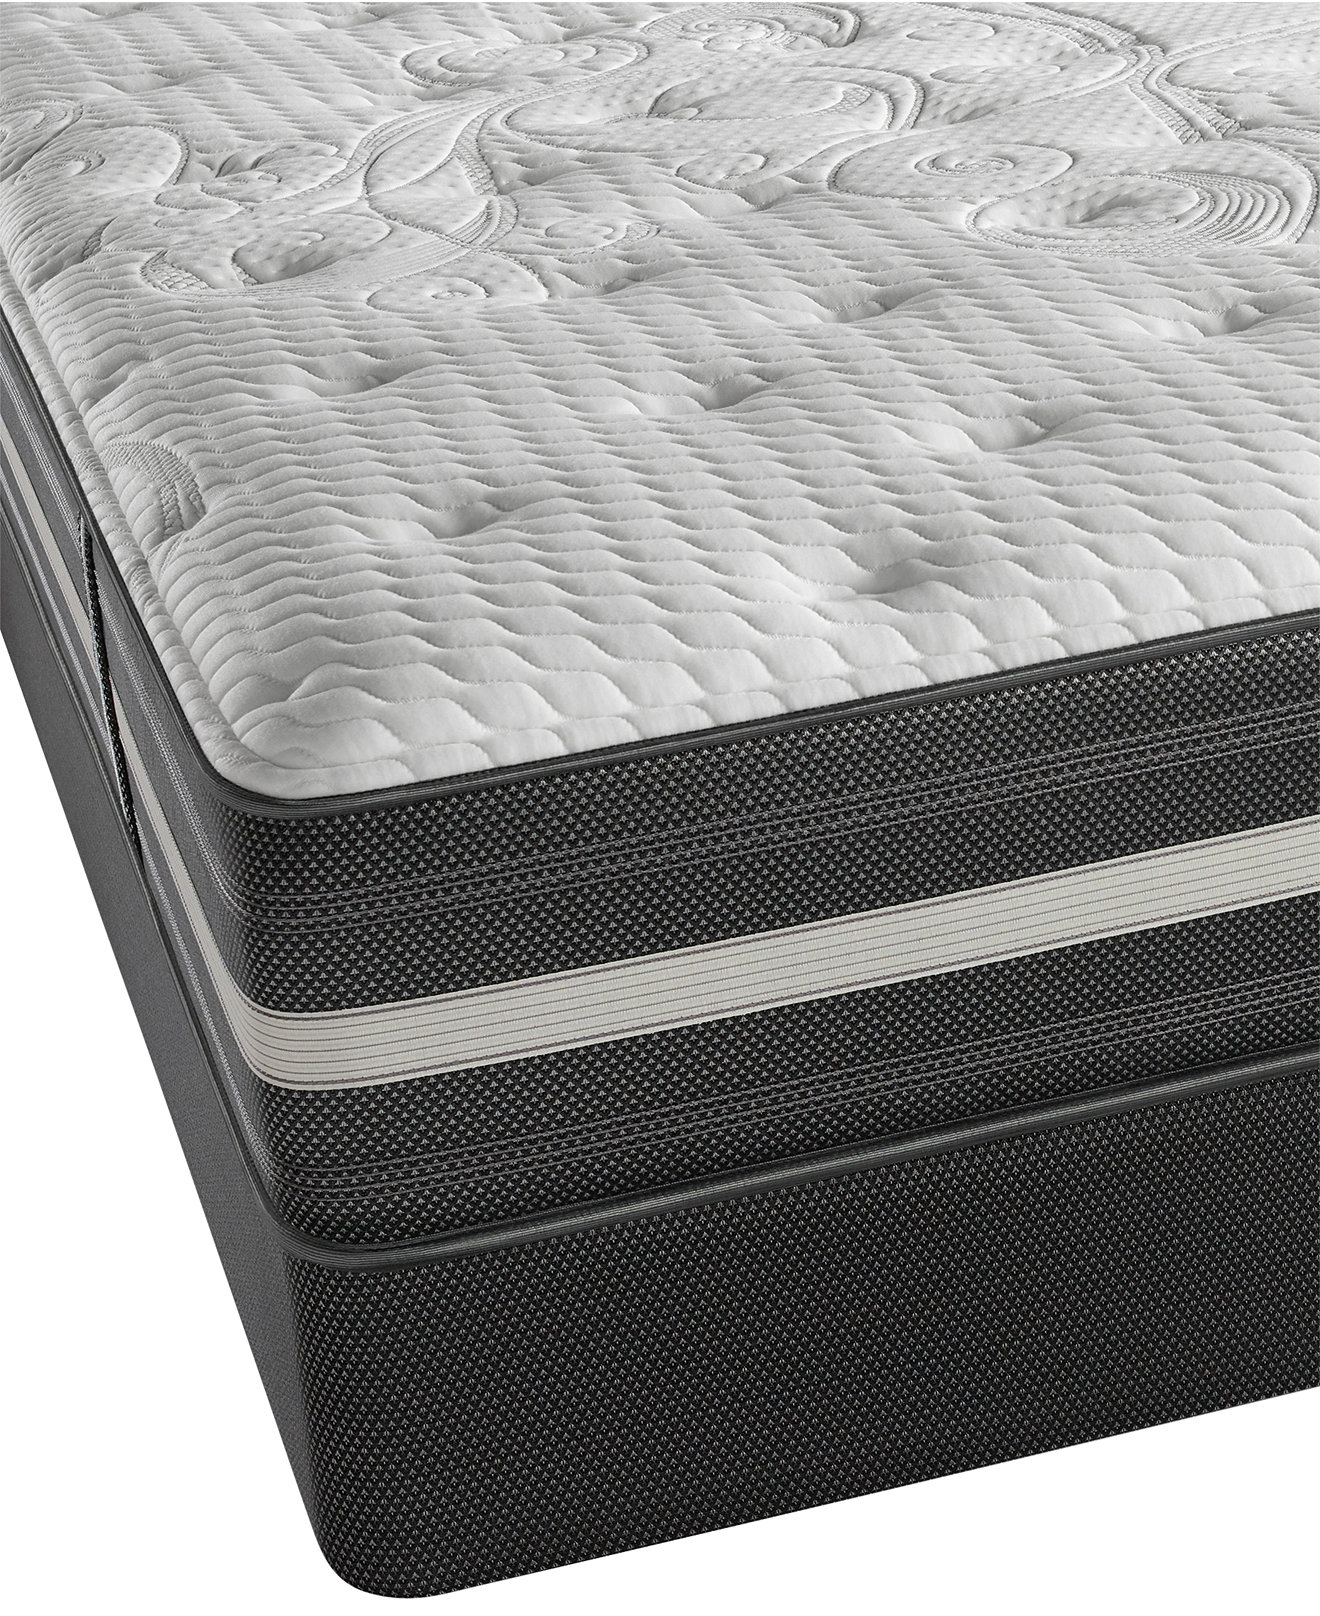 Simmons Beautyrest Mattress | Macy's Queen Mattress | Comforpedic Mattress